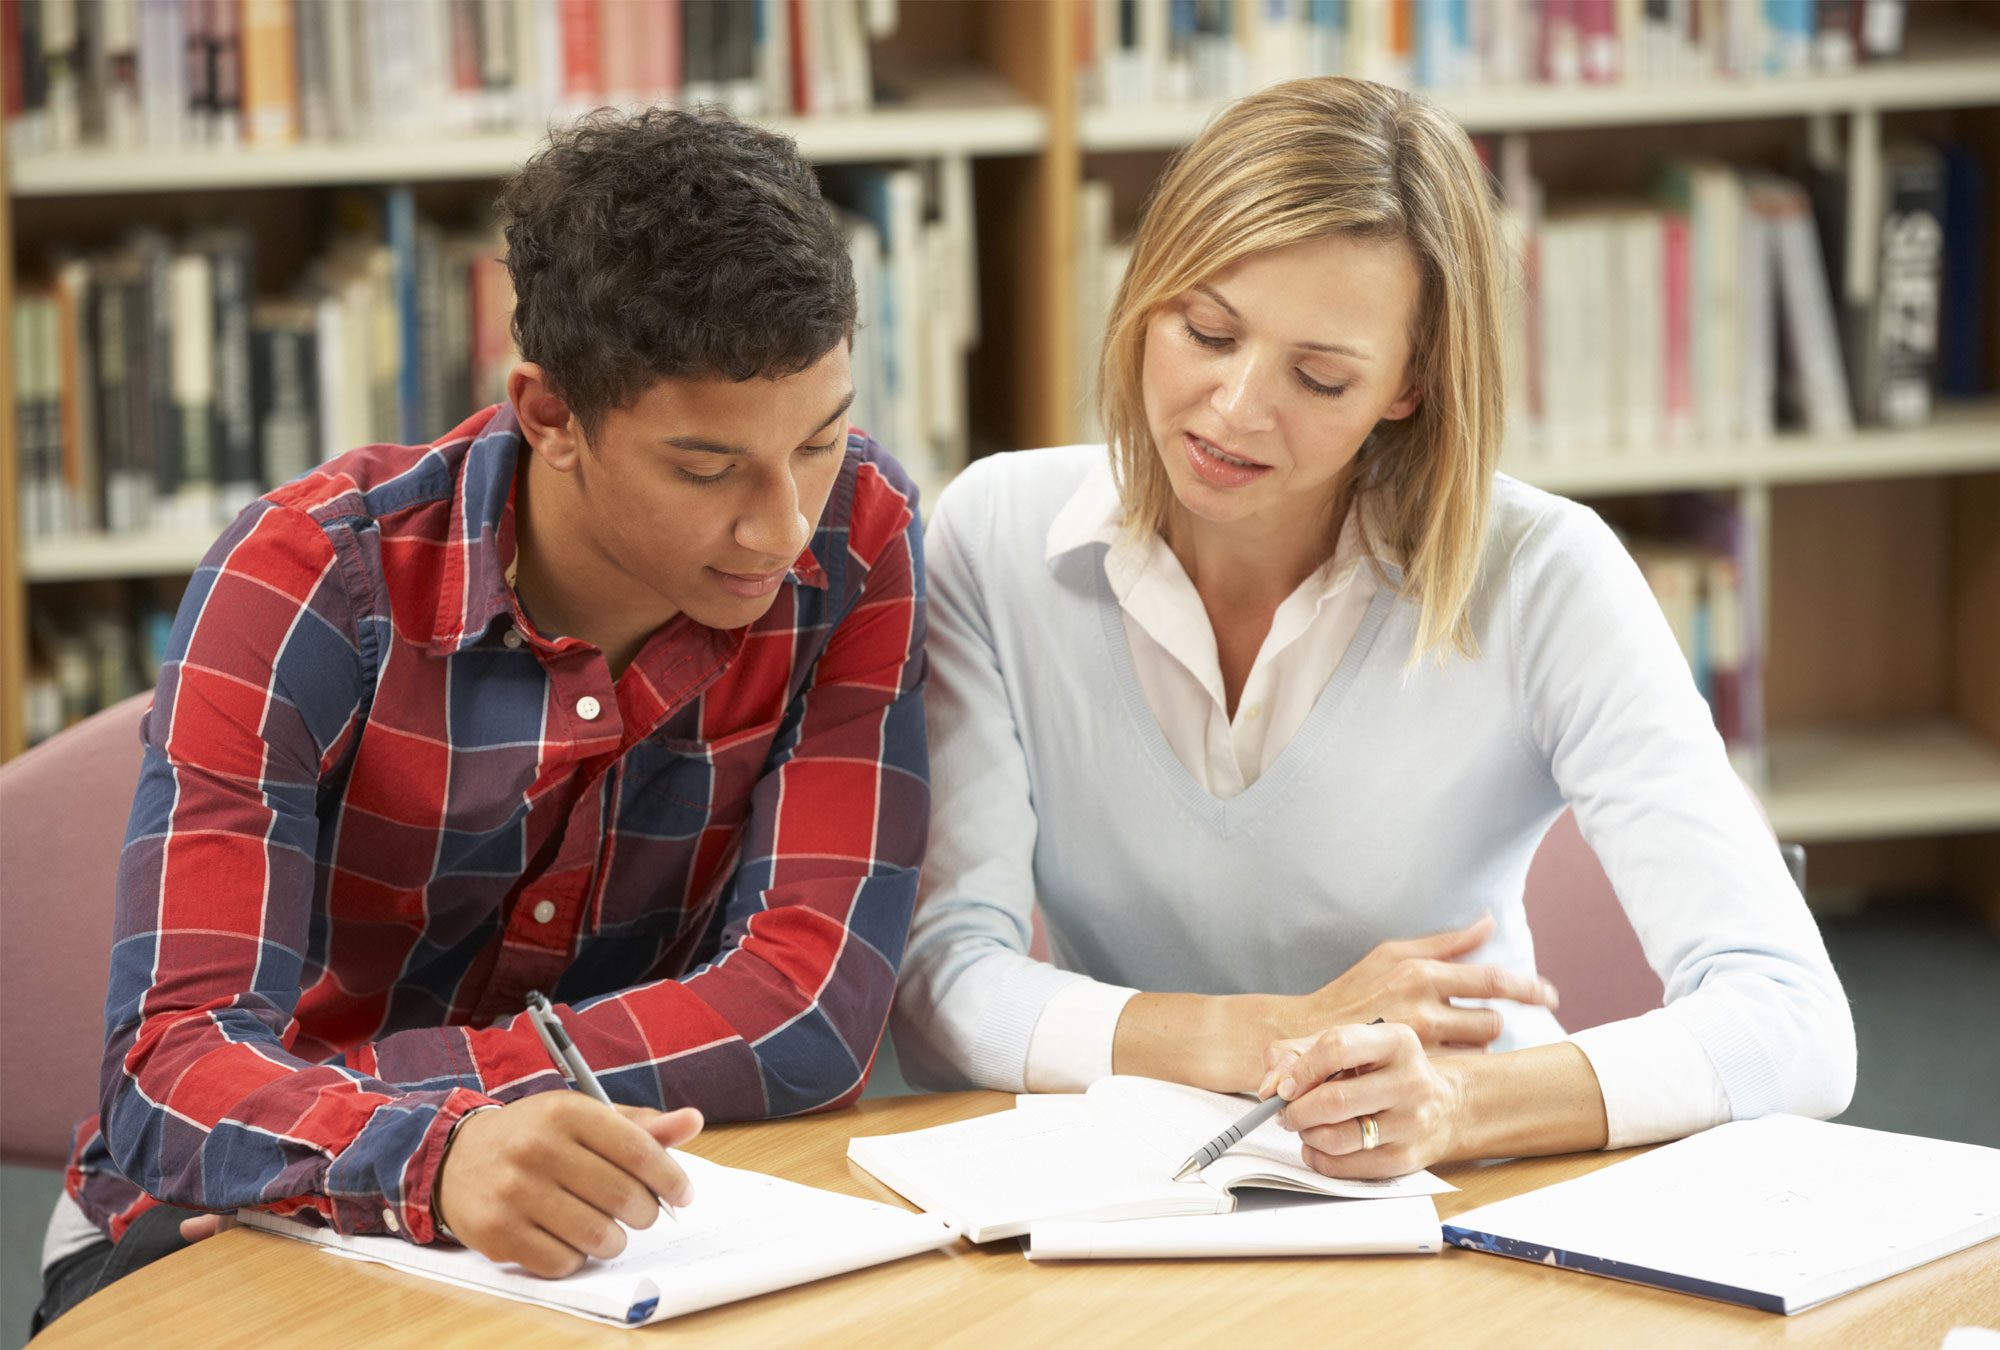 tutoring and career counseling for high school students in france